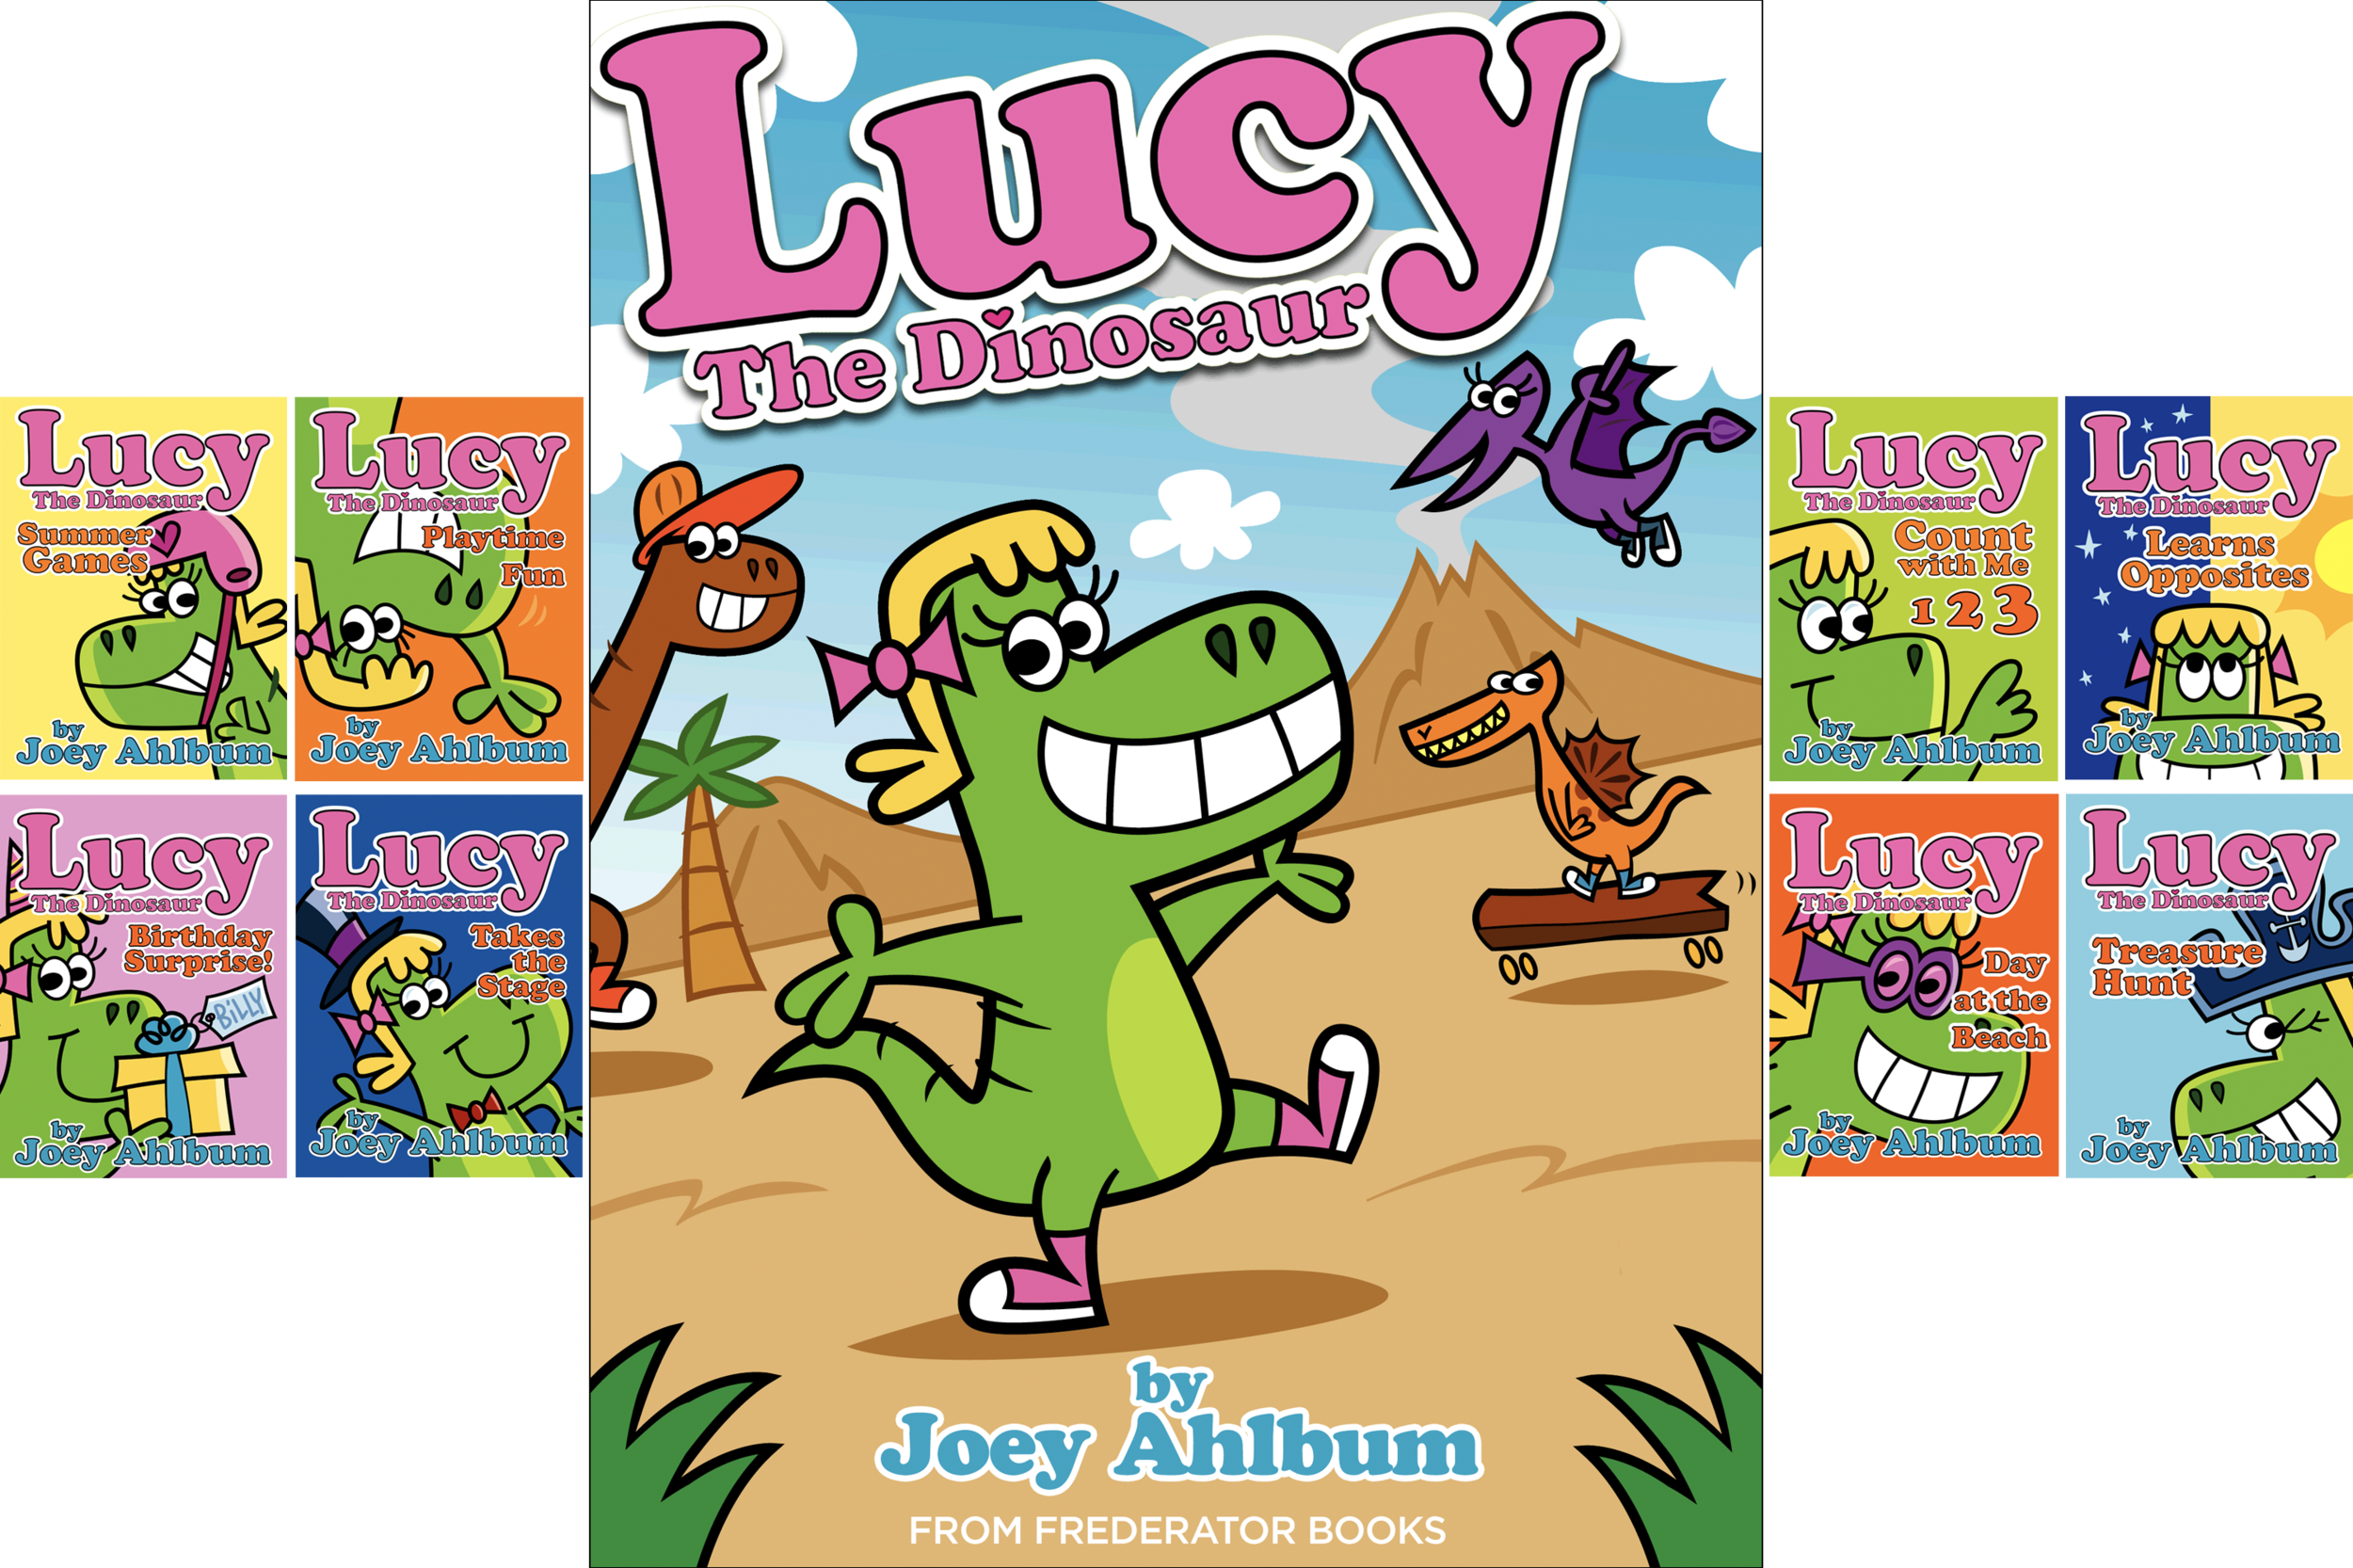 Lucy the Dinosaur  is larger than life and loves adventures. With Lucy in the lead, her loyal crew crawls, skates, and dances their way to learning. Lucy's curiosity holds no bounds--she counts, she hunts for treasure, she even puts on a play!  Veteran animator ( Elmo's World, Clifford's Puppy Days)  and author Joey Ahlbum will charm kids with his friendly and dynamic art. Fans of  Dinosaur vs. Bedtime , Sandra Boynton & Mo Willems will love these cheerful stories.